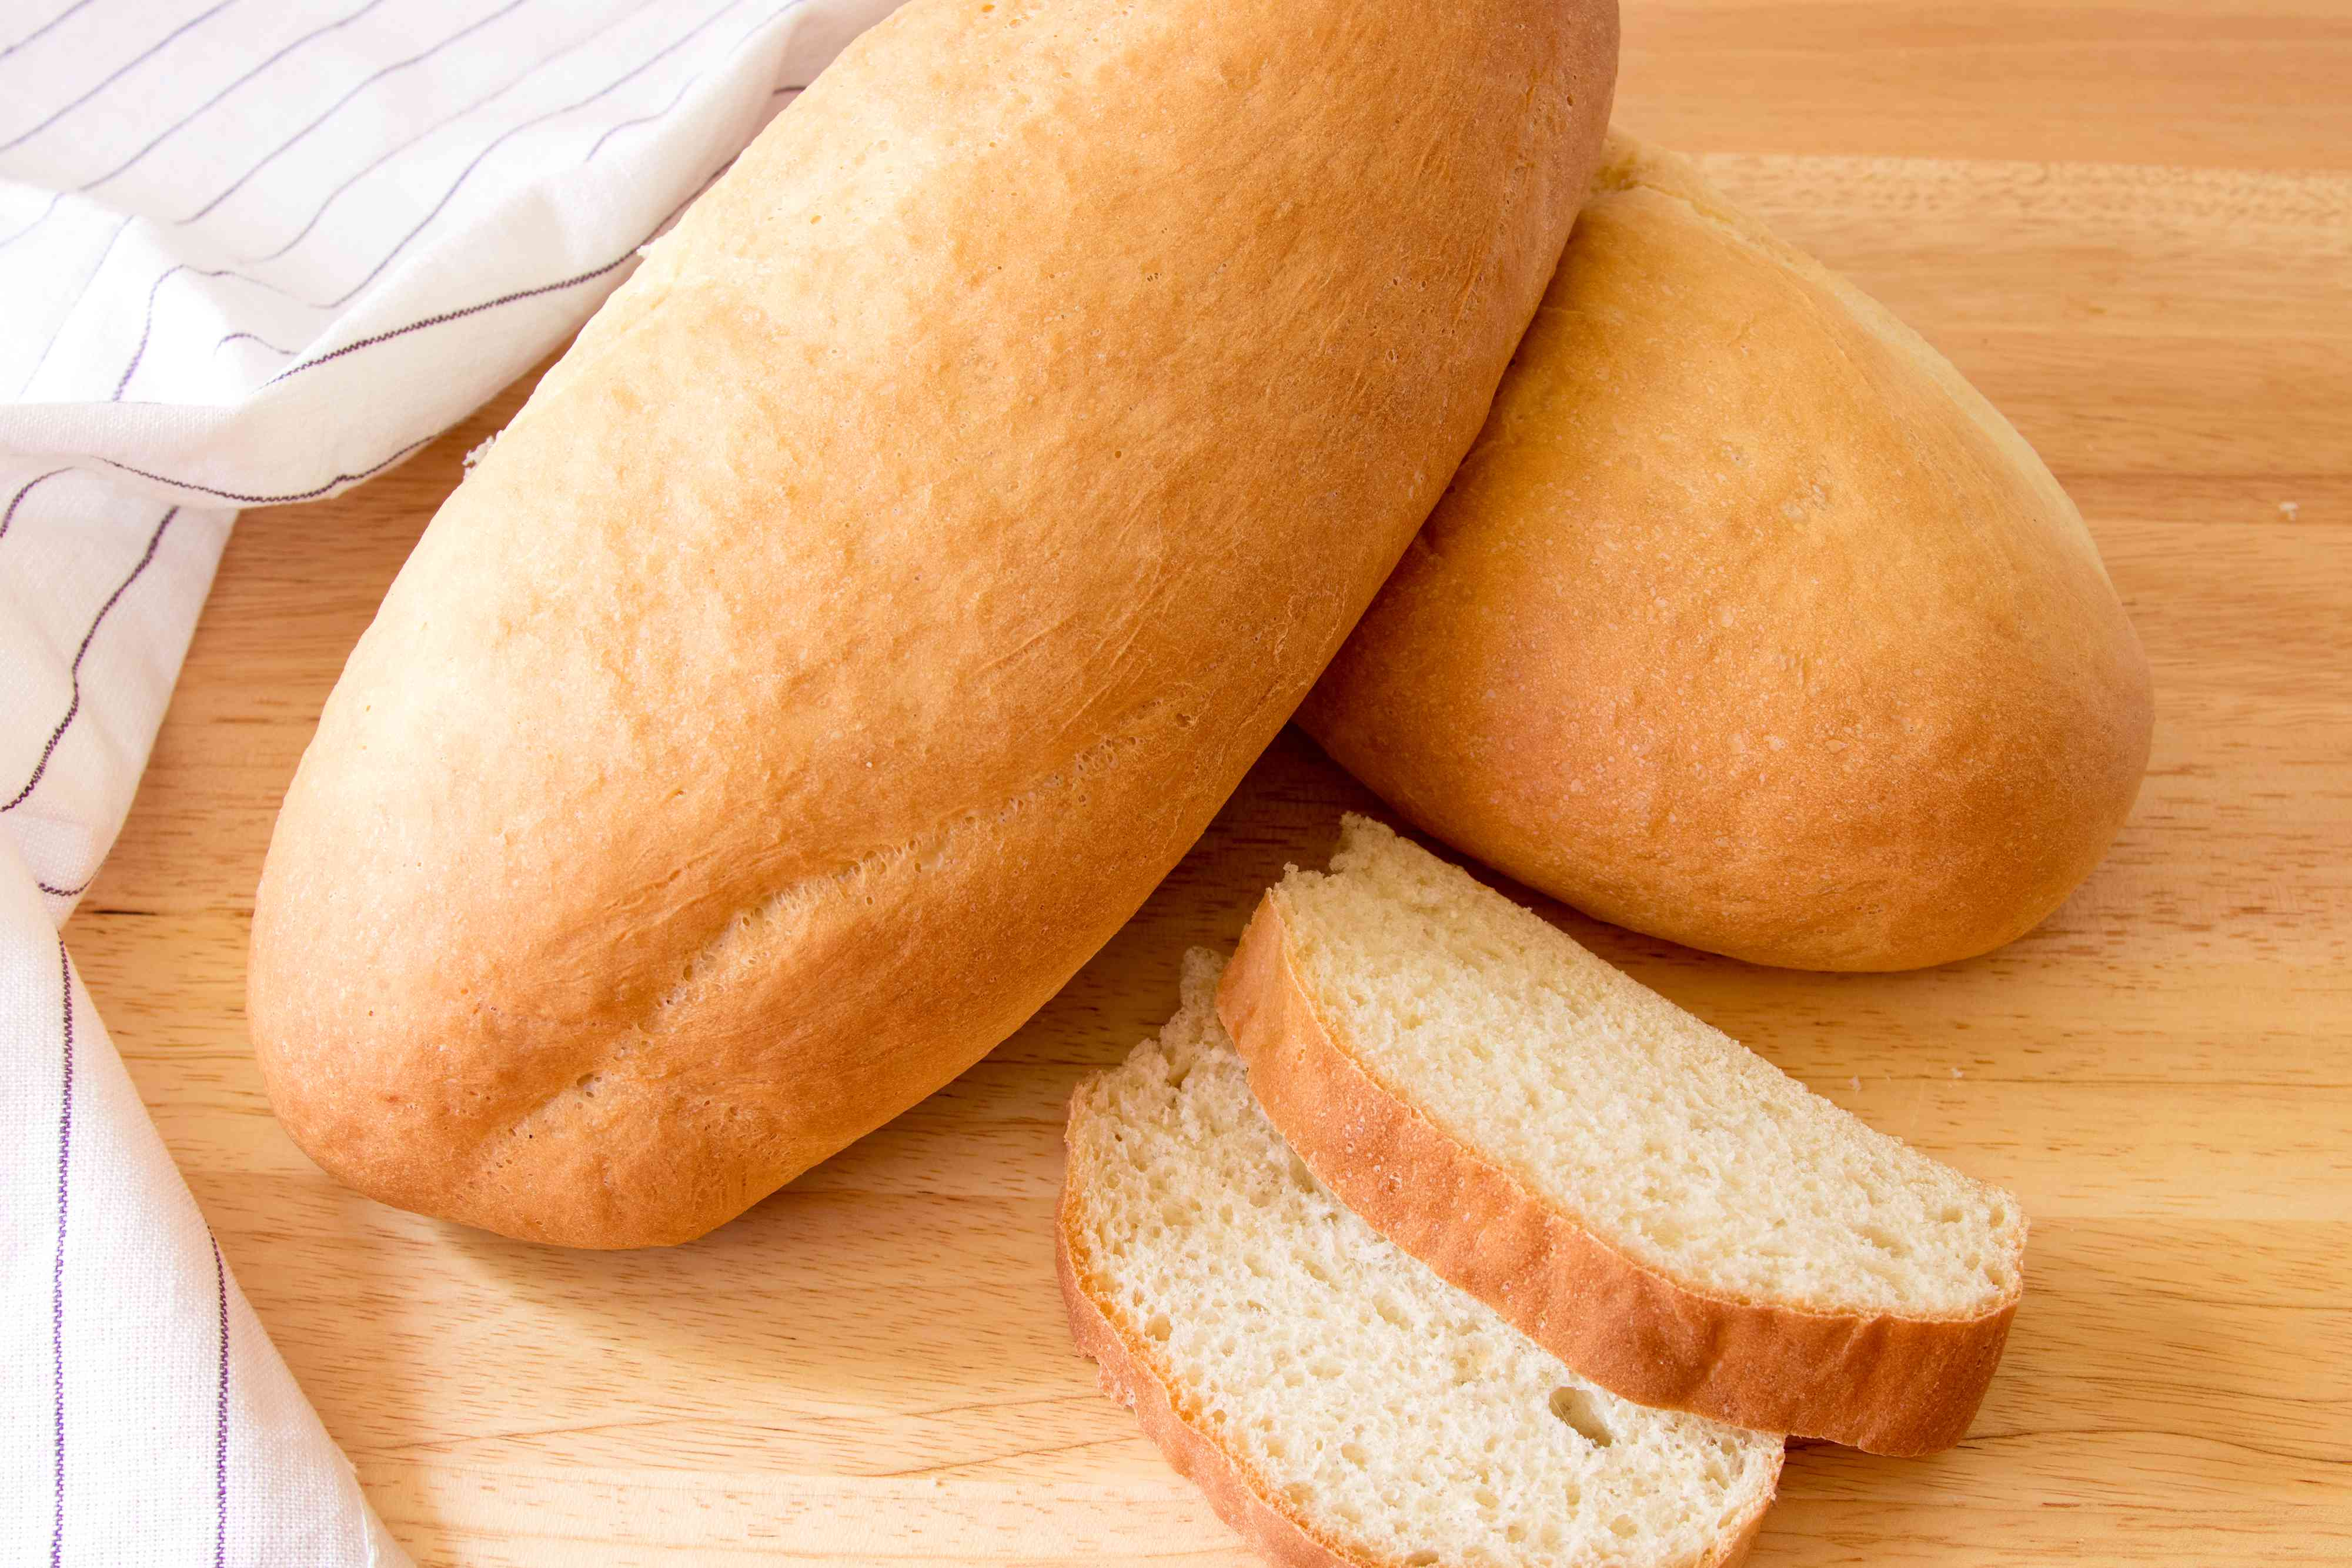 Puerto Rican pan sobao bread, whole and sliced